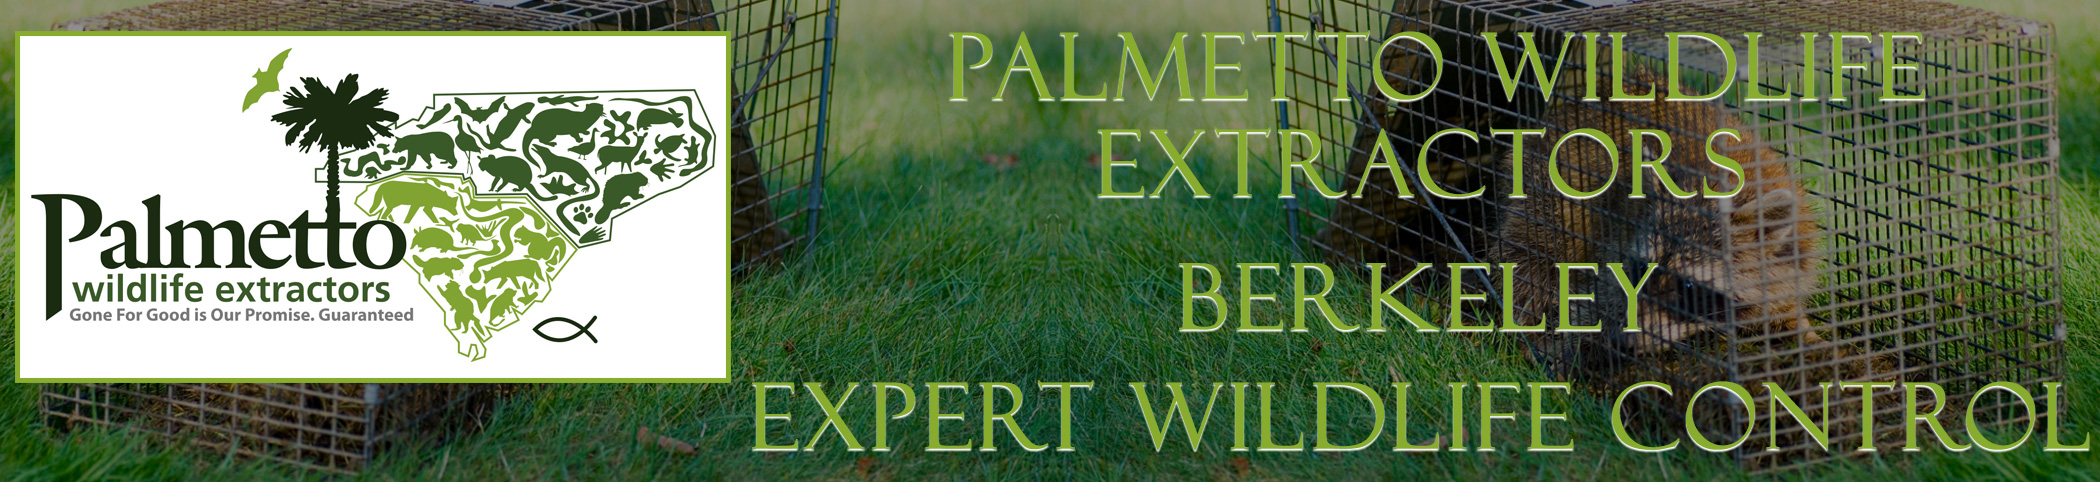 Palmetto Wildlife Extractors Berkeley south carolina header image